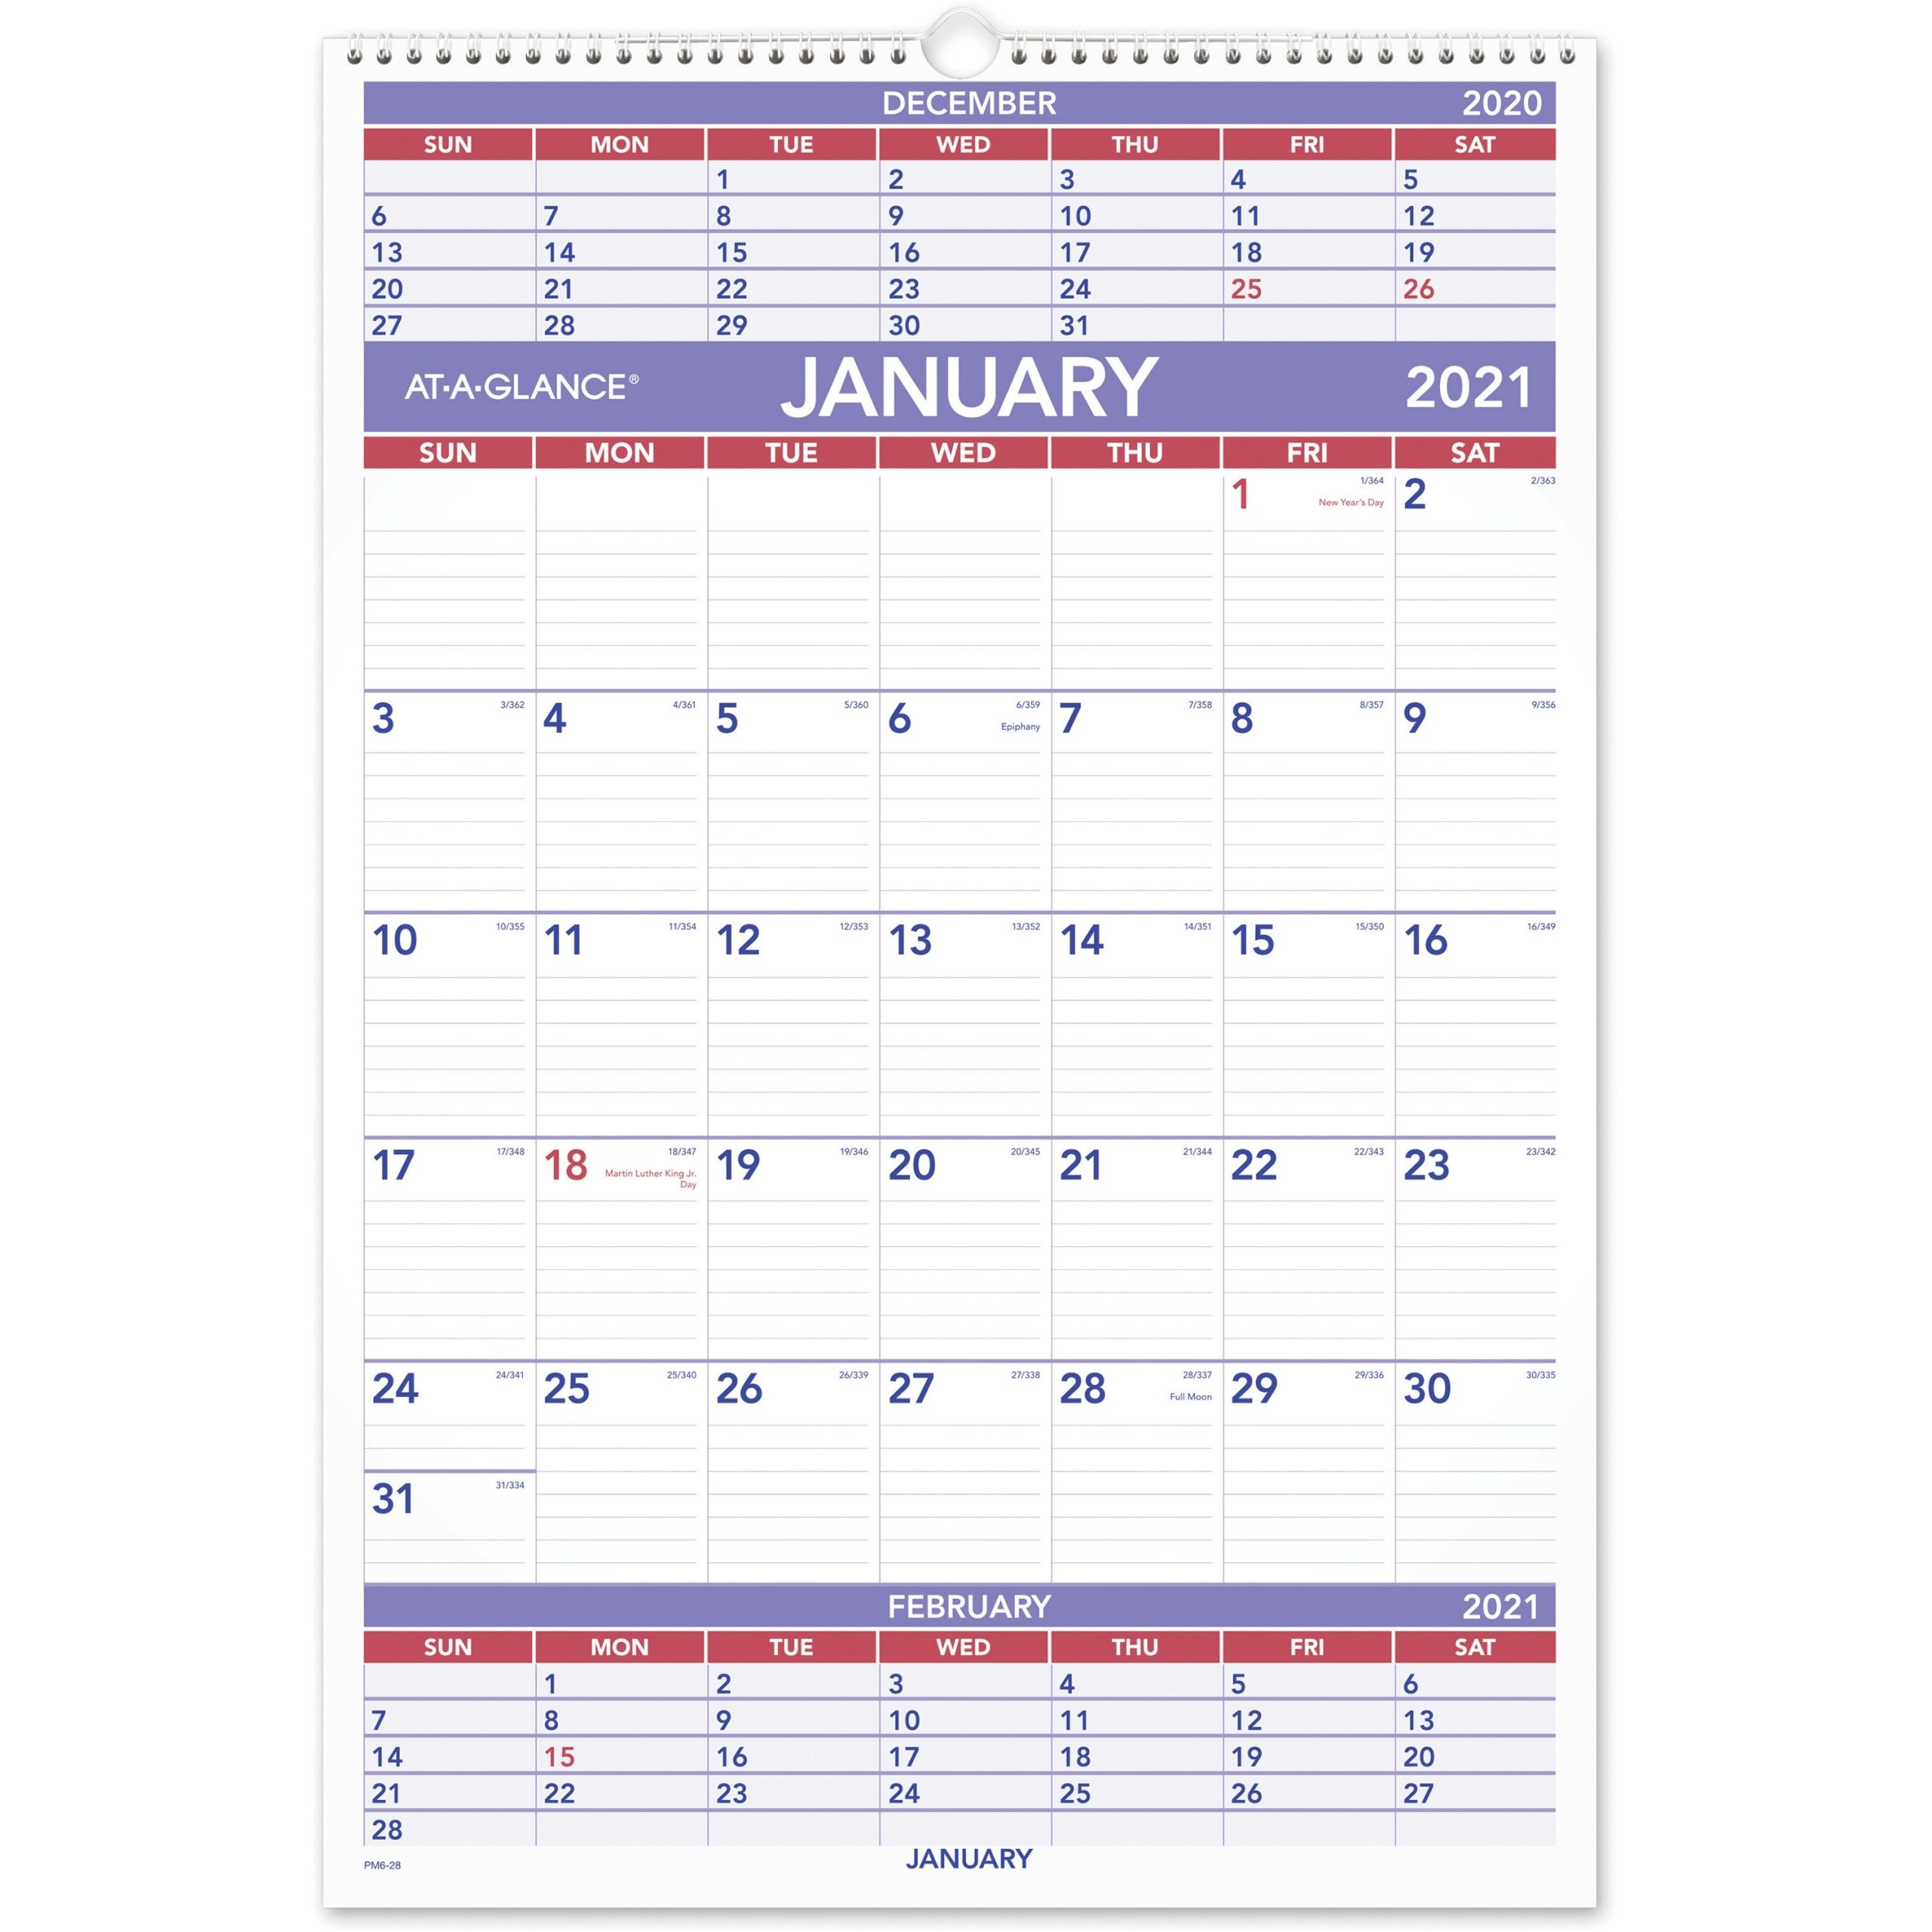 "At-A-Glance 3-Month Wall Calendar - Julian Dates - Quarterly - 1 Year -  January 2021 Till December 2021 - 3 Month Single Page Layout - 15 1/2"" X 22"